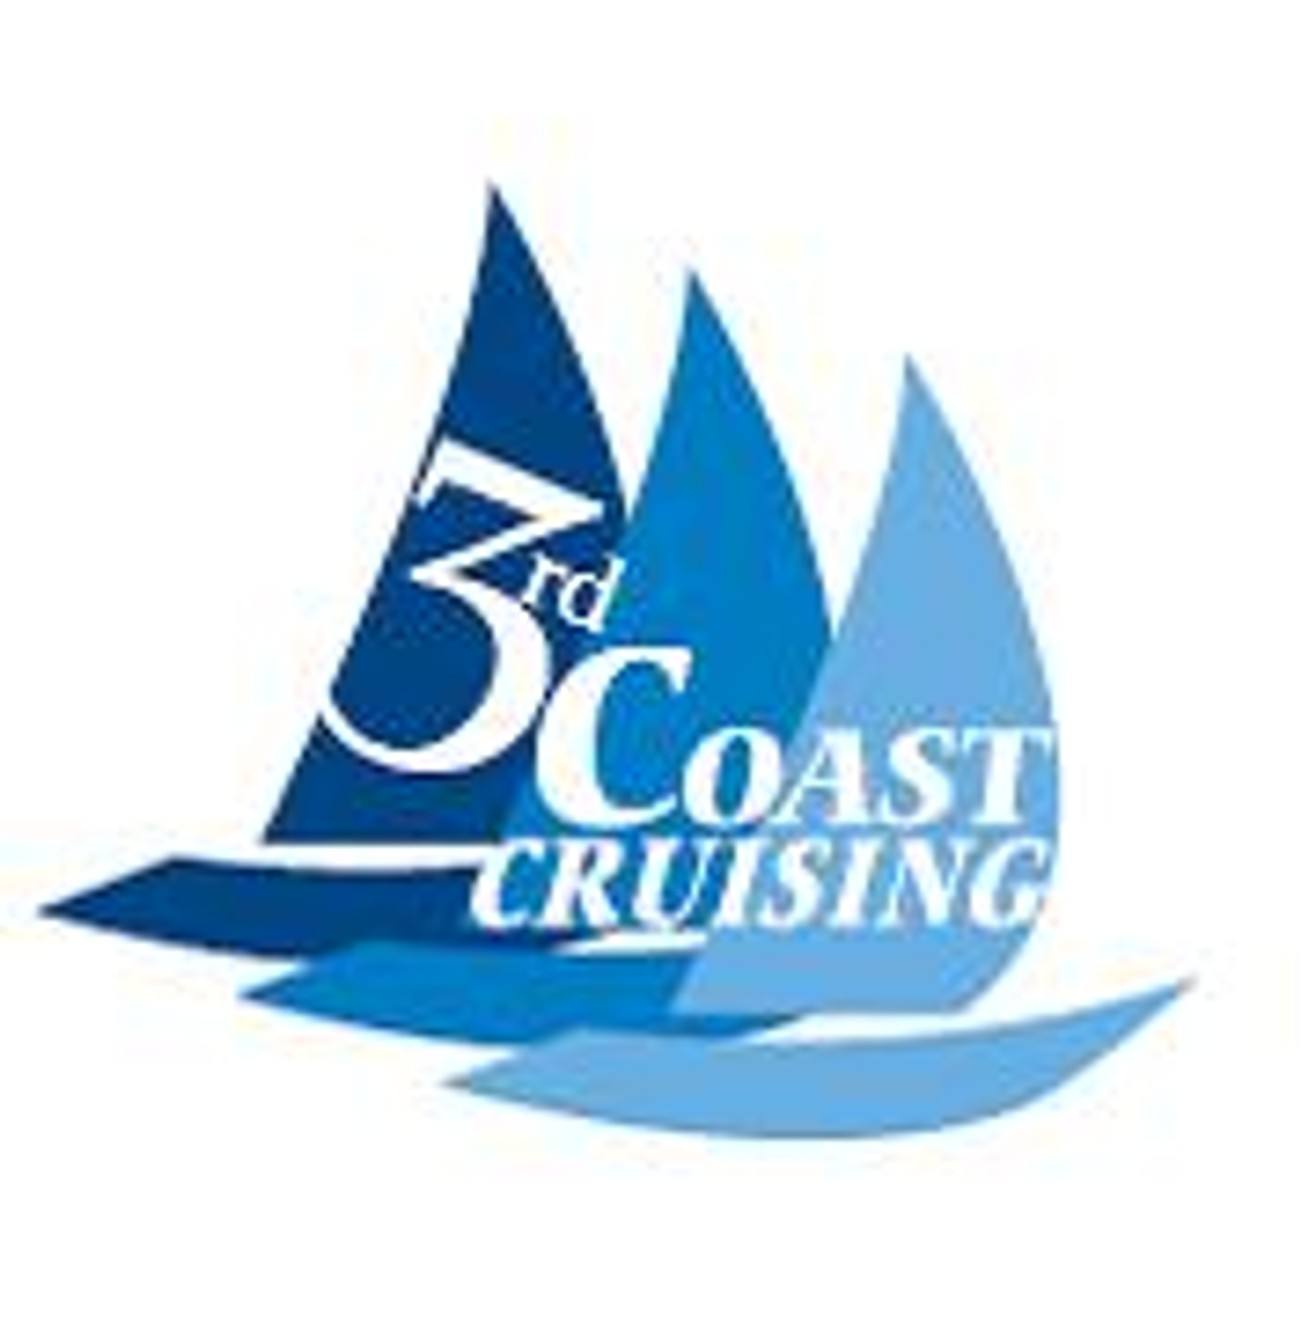 3rd Coast Cruising